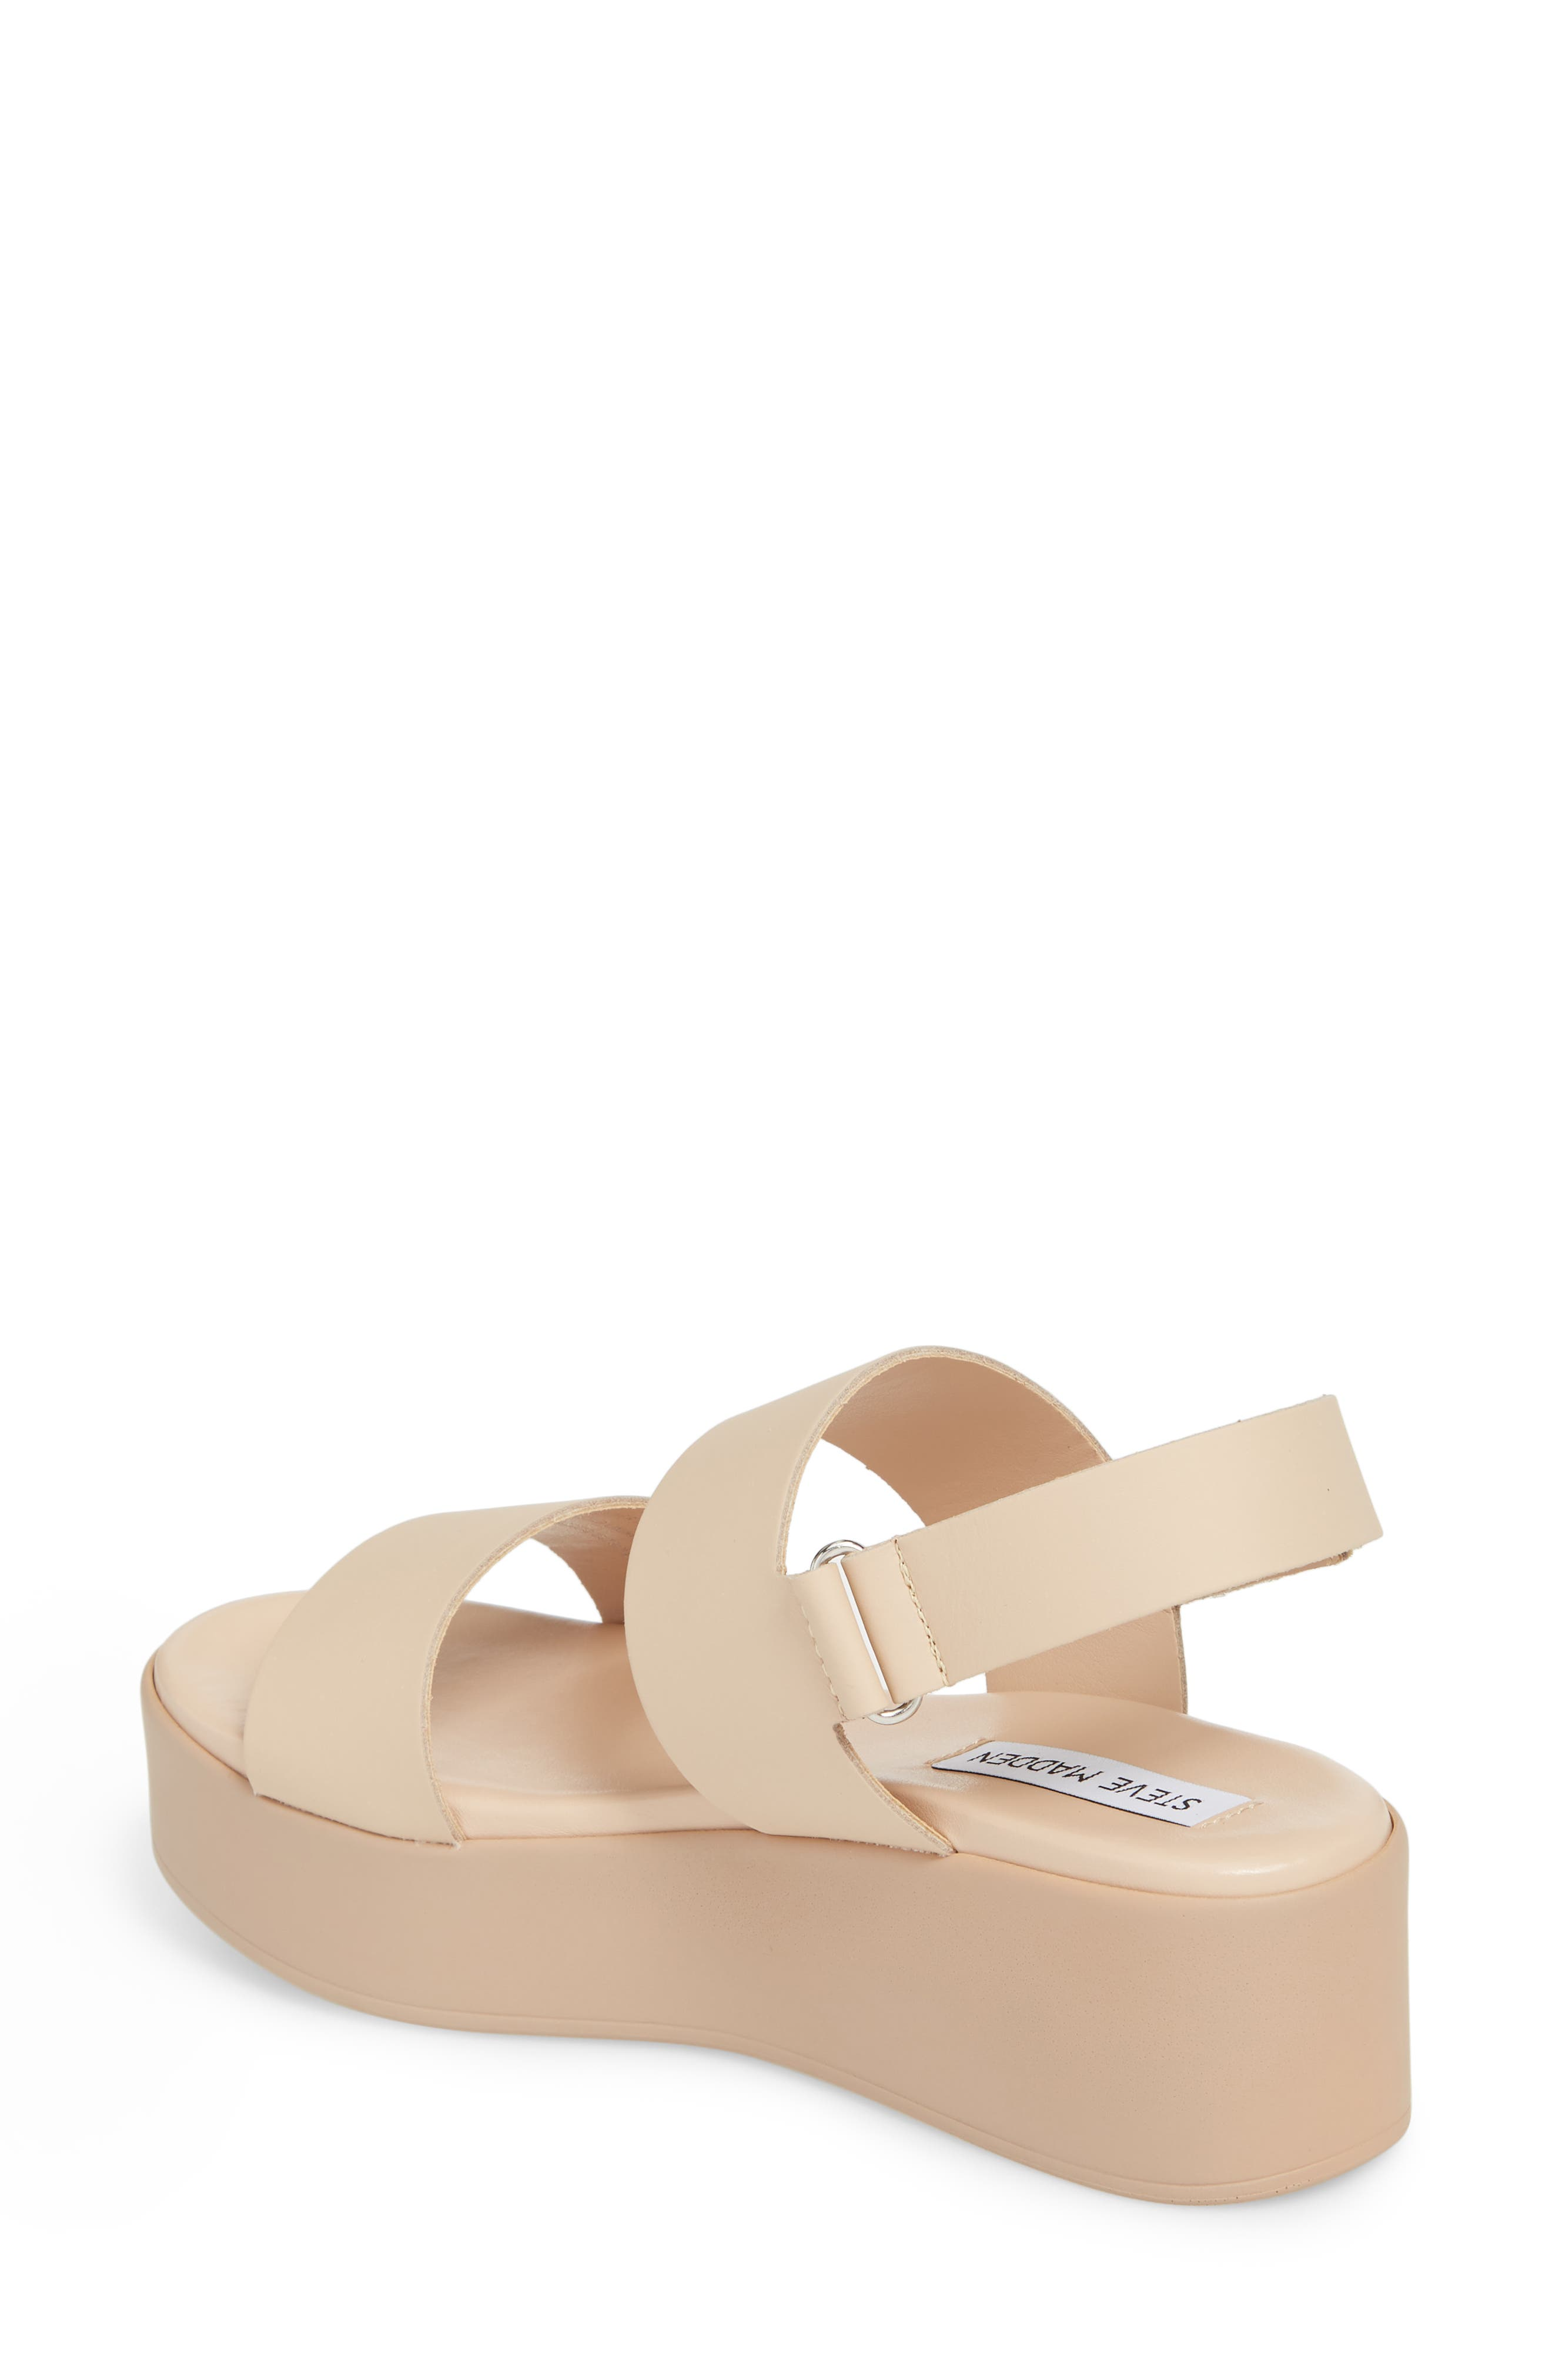 Rachel Platform Wedge Sandal,                             Alternate thumbnail 2, color,                             250